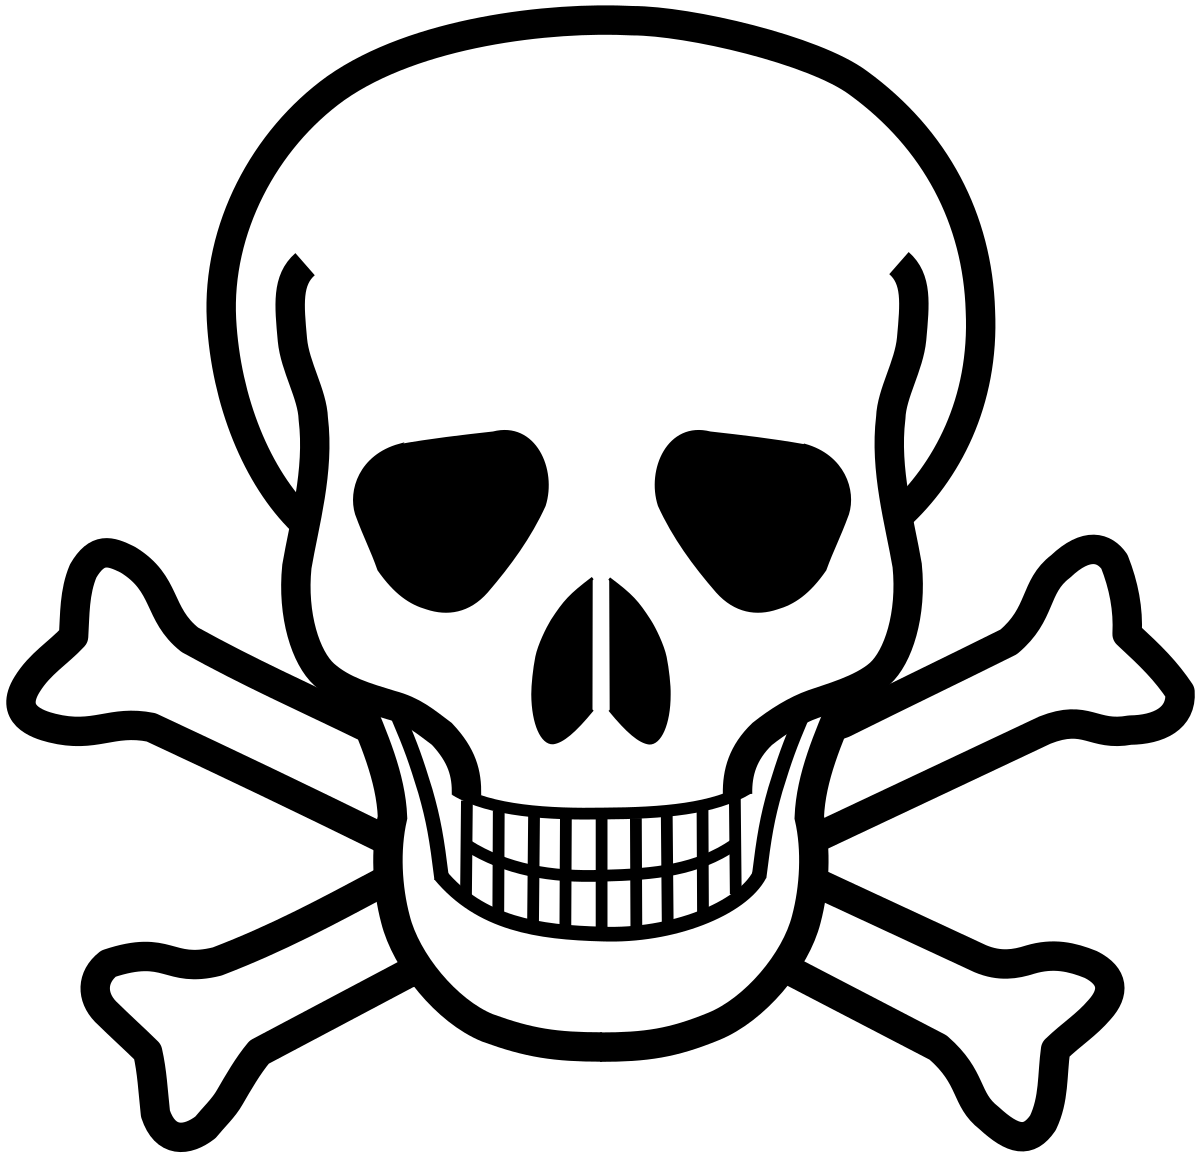 Poison clipart chemical hazard. Toxicity wikipedia